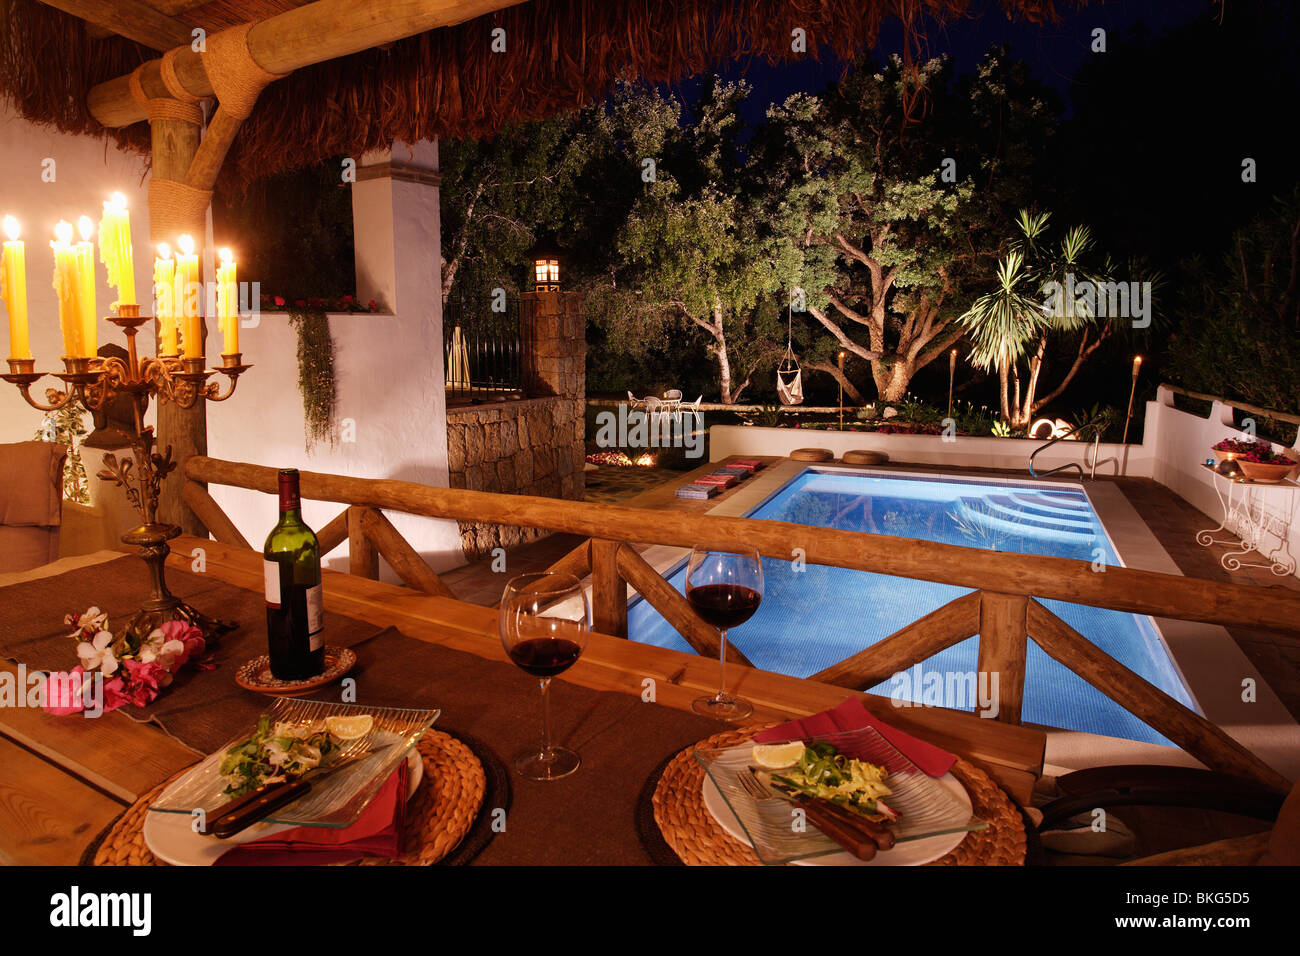 Candles on table set for dinner on balcony of Spanish villa with swimming pool lit at night & Candles on table set for dinner on balcony of Spanish villa with ...